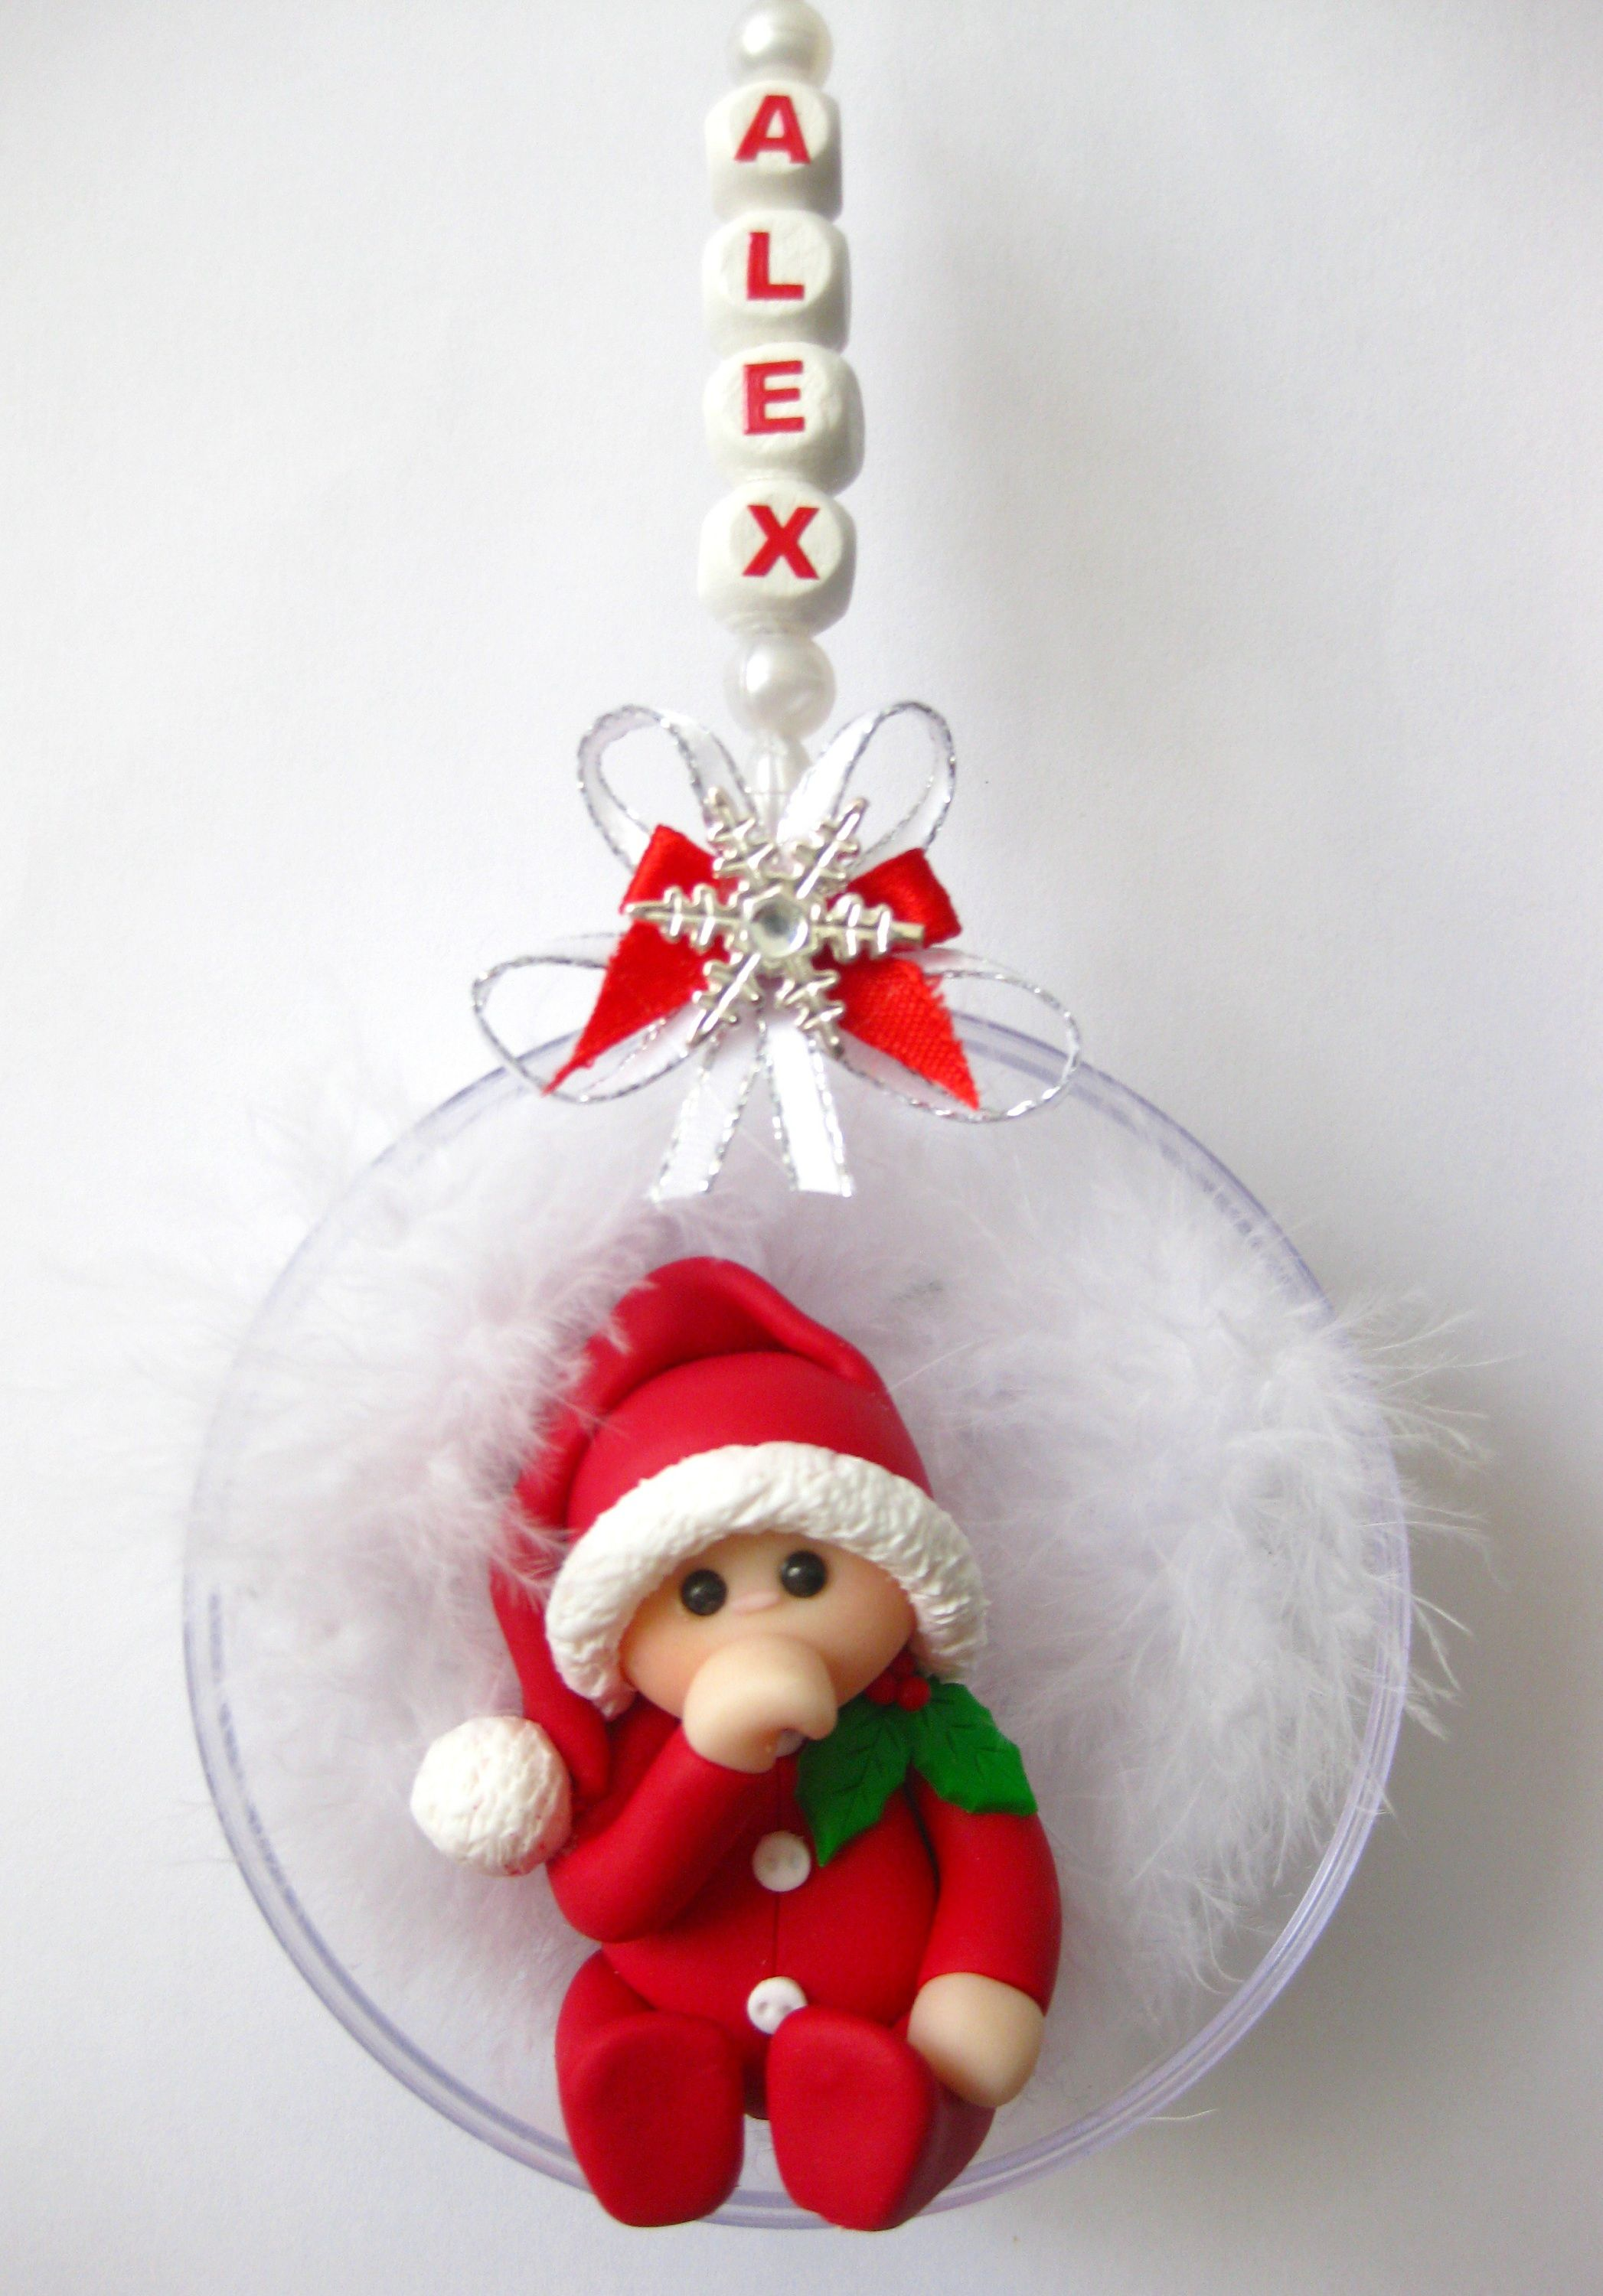 Buy Handmade Gifts And Personalised Accessories Directly From Uk Makers And Designers Baby First Christmas Ornament Christmas Clay Christmas Ornaments